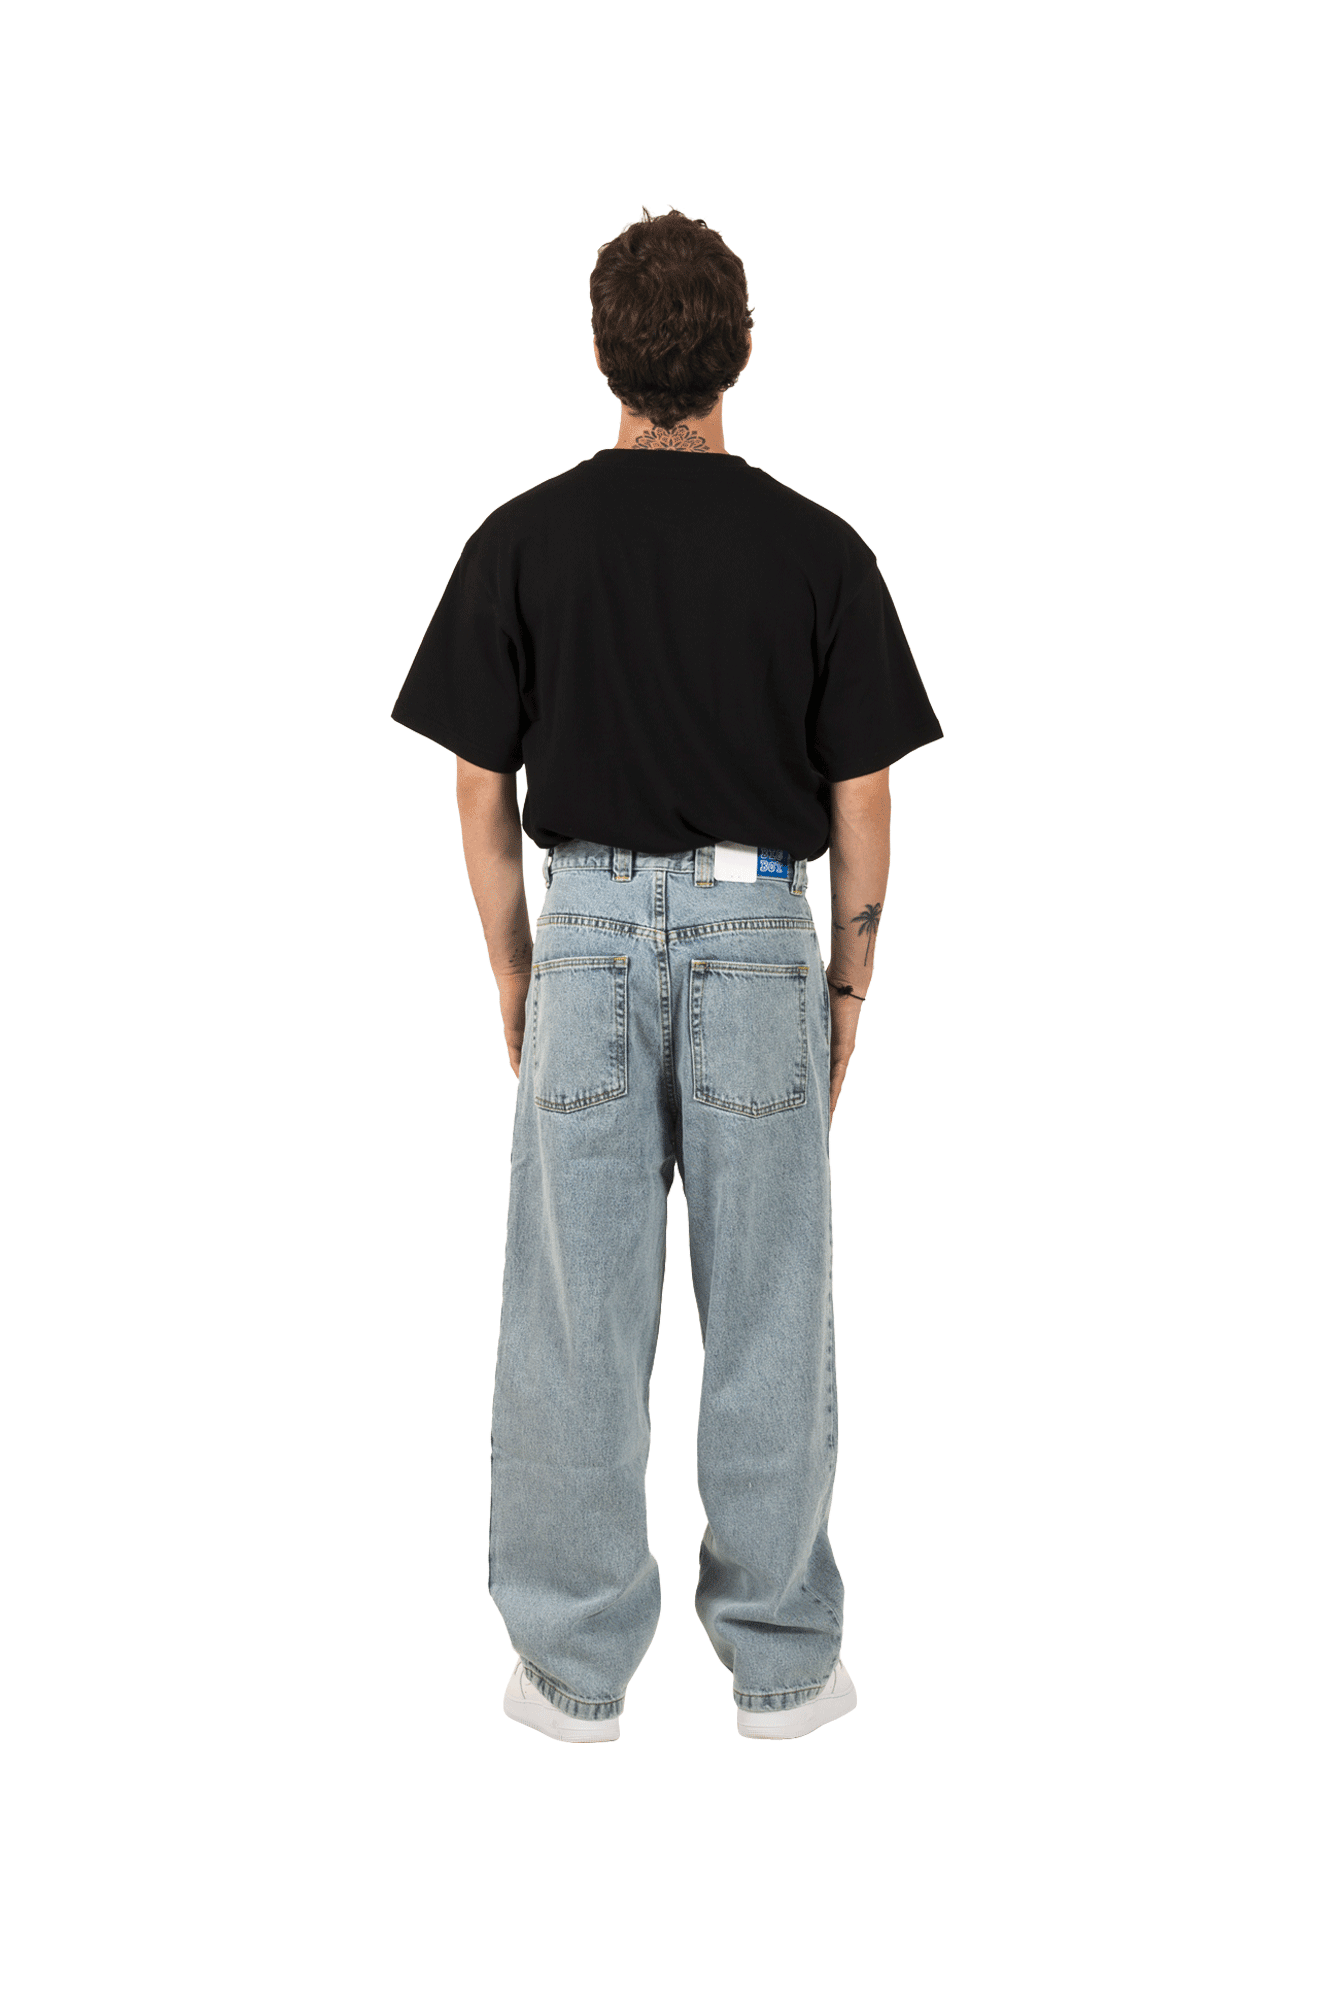 Polar Jeans Big Boy Jeans Blu POL-BIGBOY#LBLUE#LBLUE#S - One Block Down